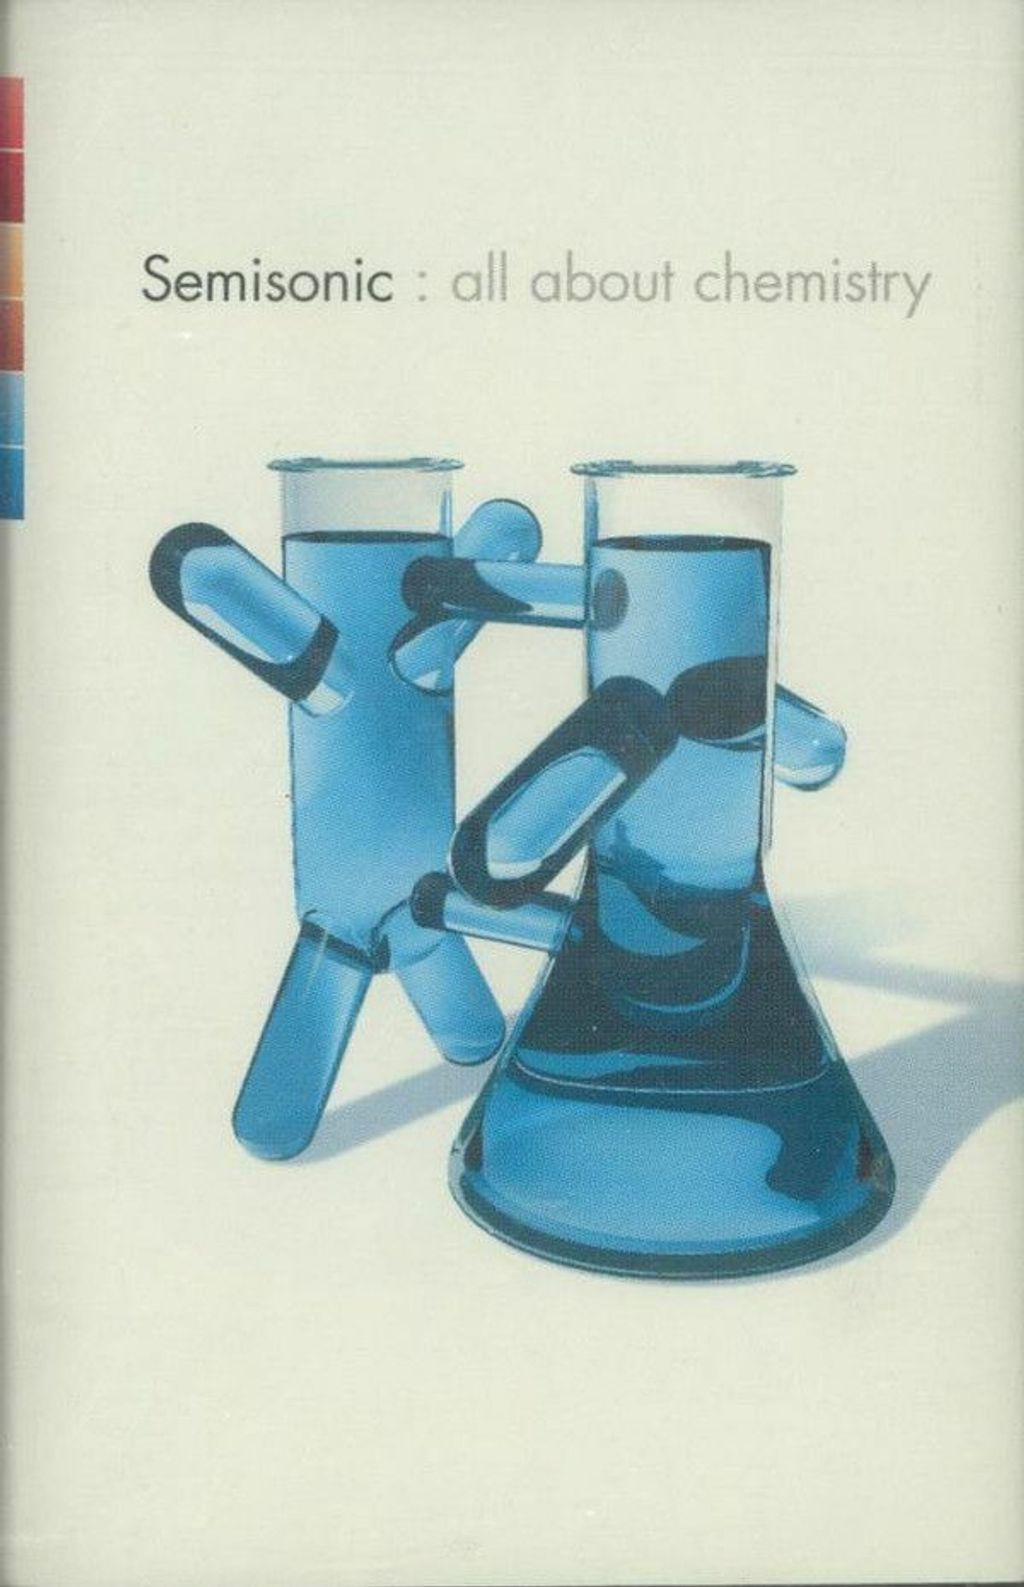 (NOS) SEMISONIC All About Chemistry CASSETTE TAPE.jpg